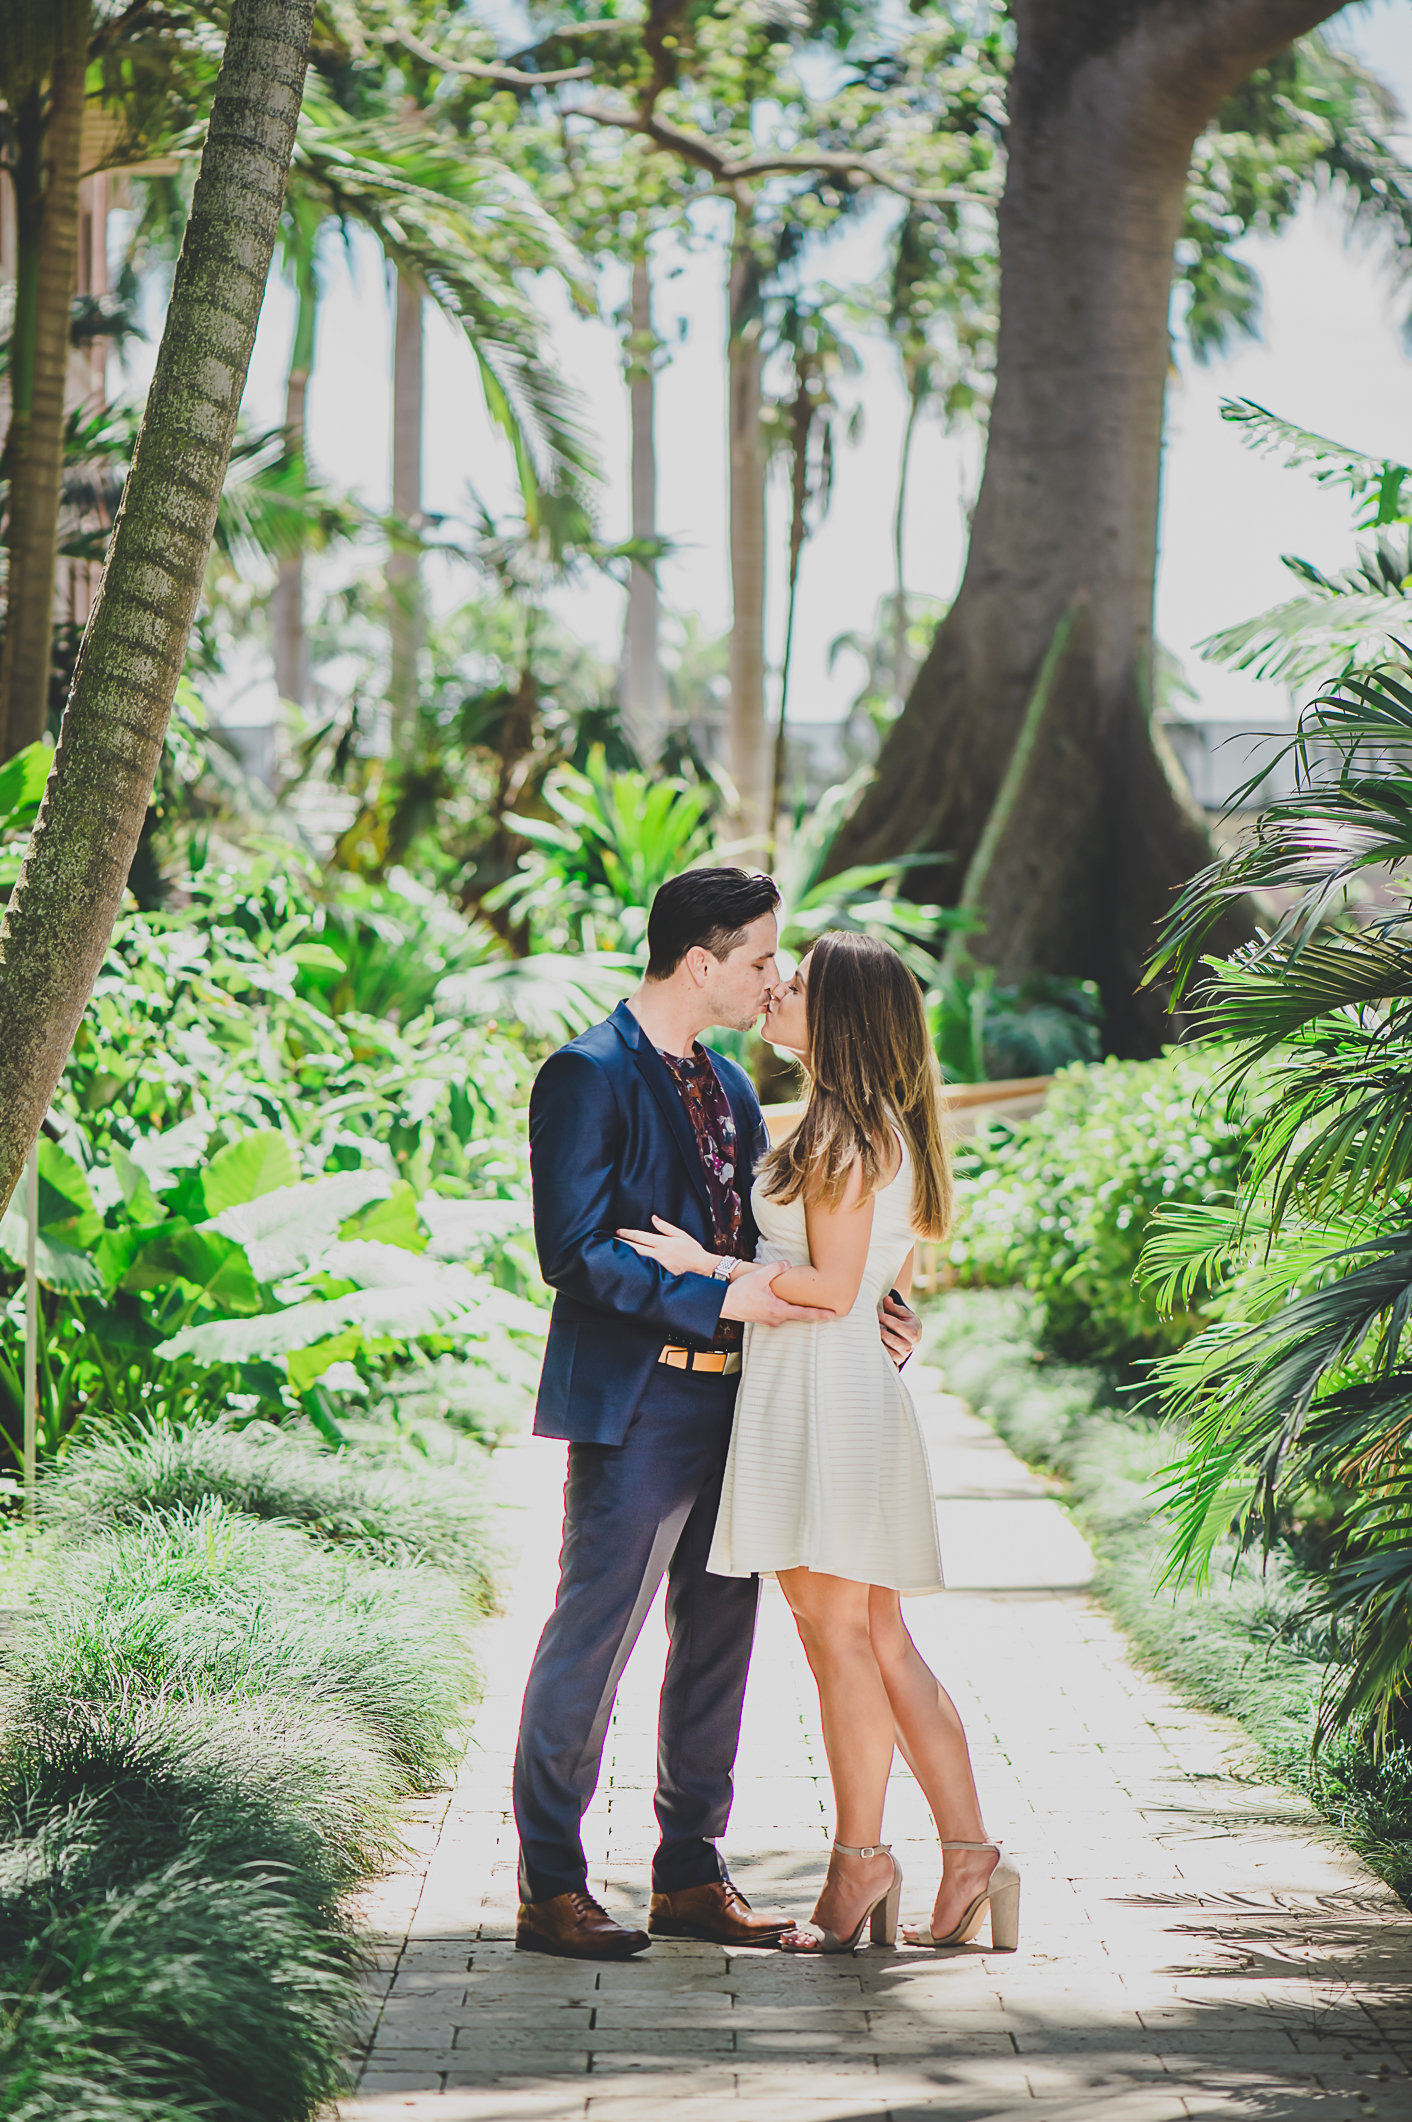 Boca Raton Engagement - Boca Raton Resort by Palm Beach Photography